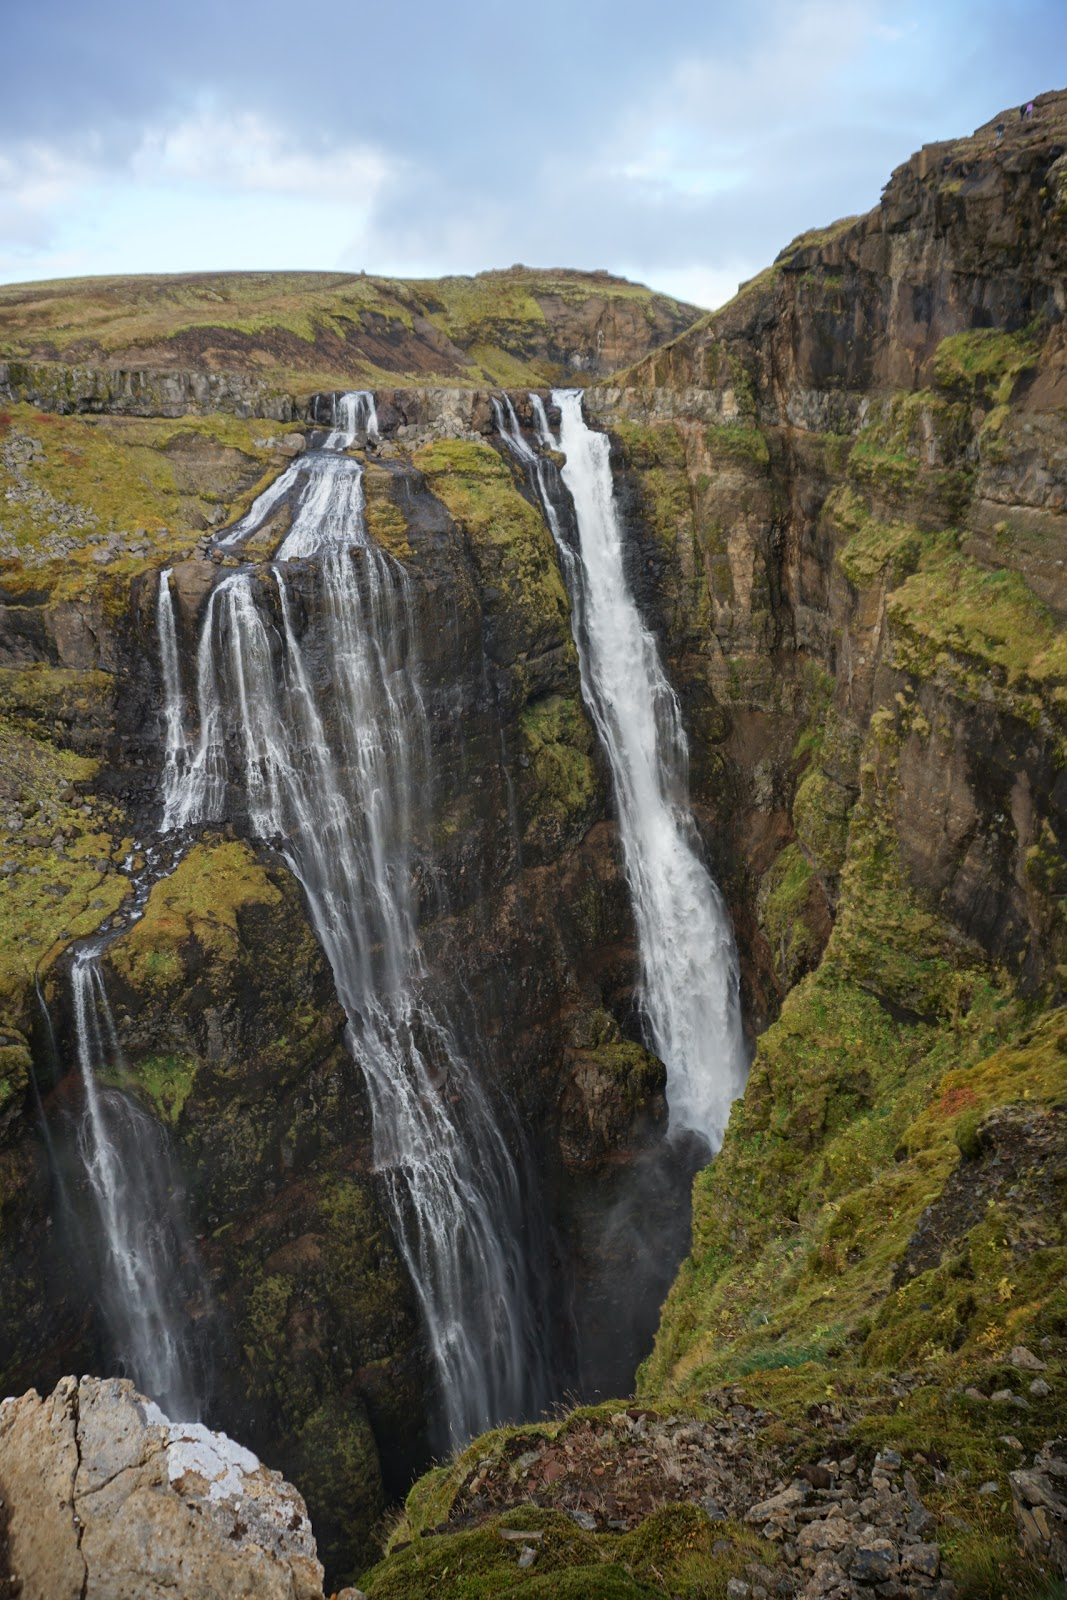 Fall Wallpaper Road Hiking To Glymur Iceland S Second Tallest Waterfall